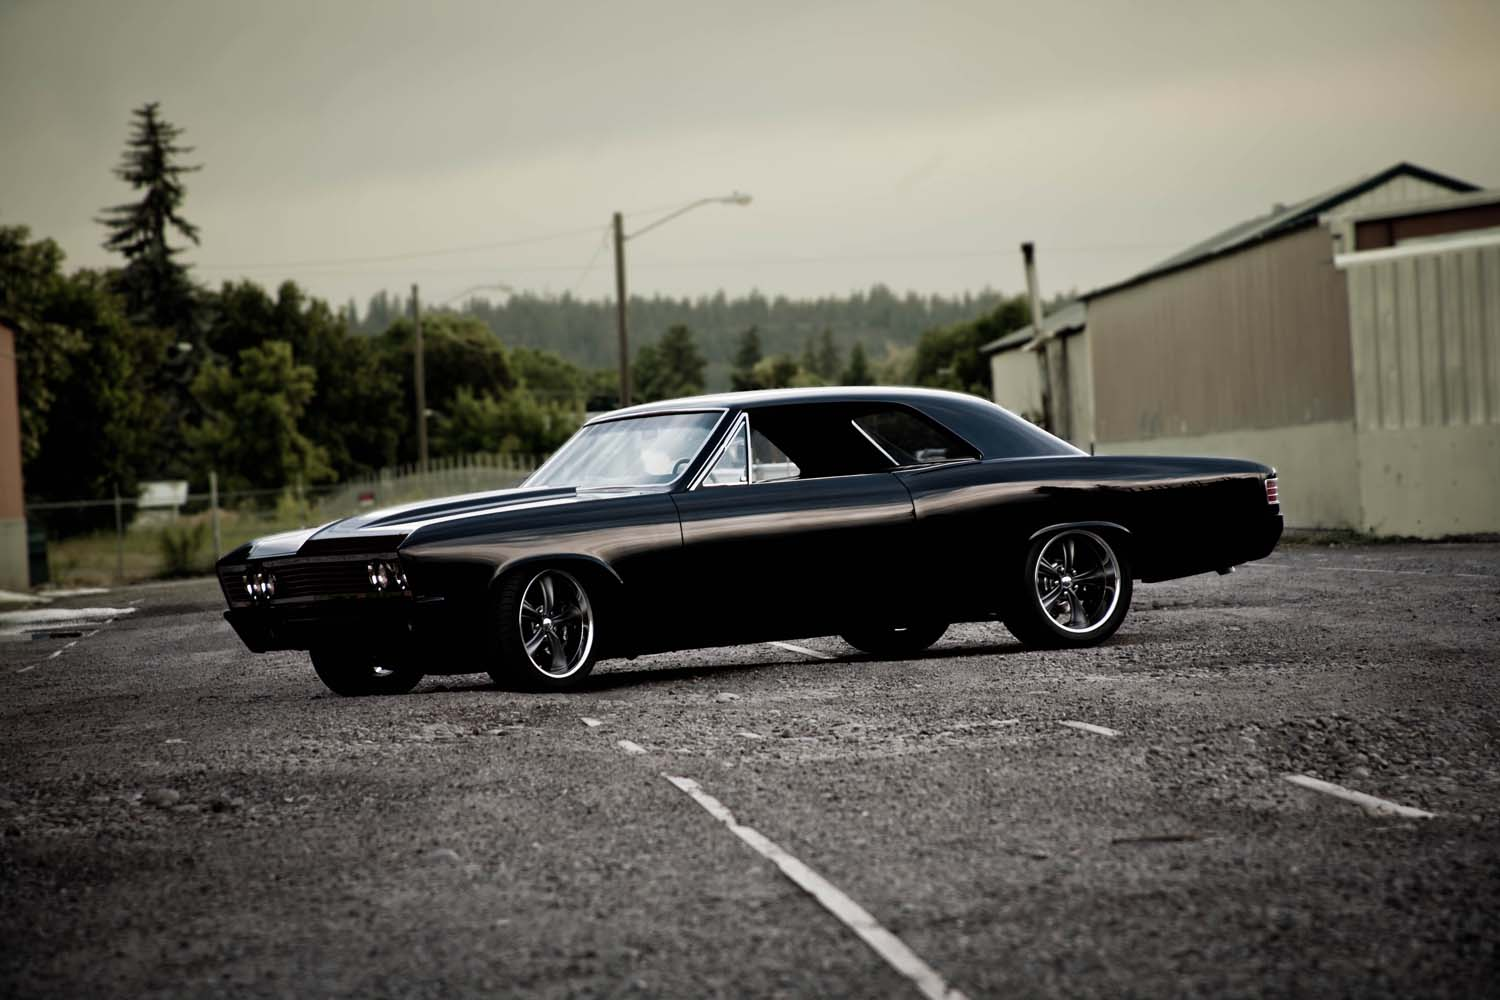 Chevy Impala 1967 Wallpaper Hd Chevelle Ocd Customs